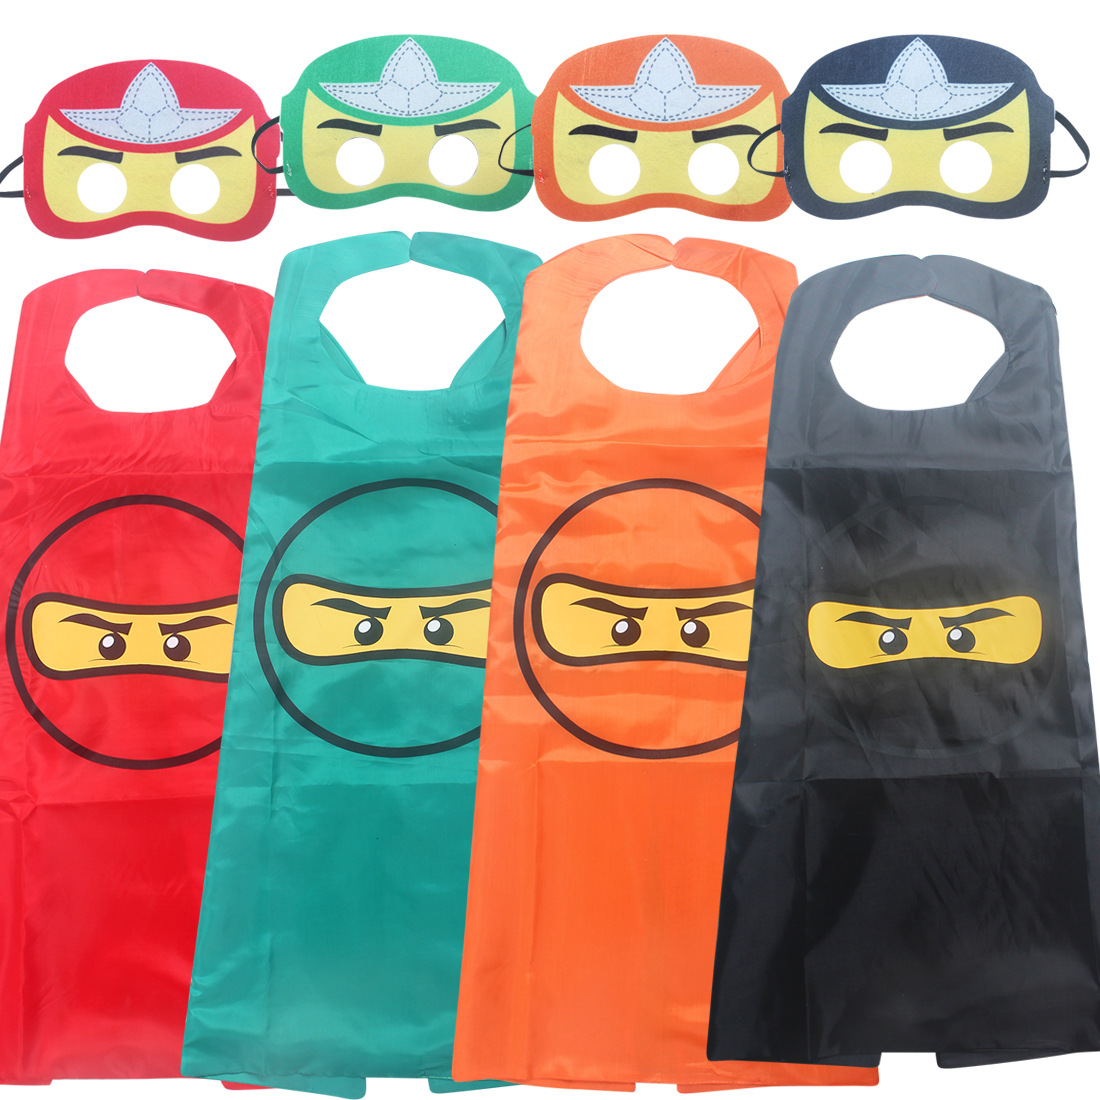 ninjago Super hero man spiderman batman capes with masks for kids birthday party supplies - party favor clothing set for 2-10Y